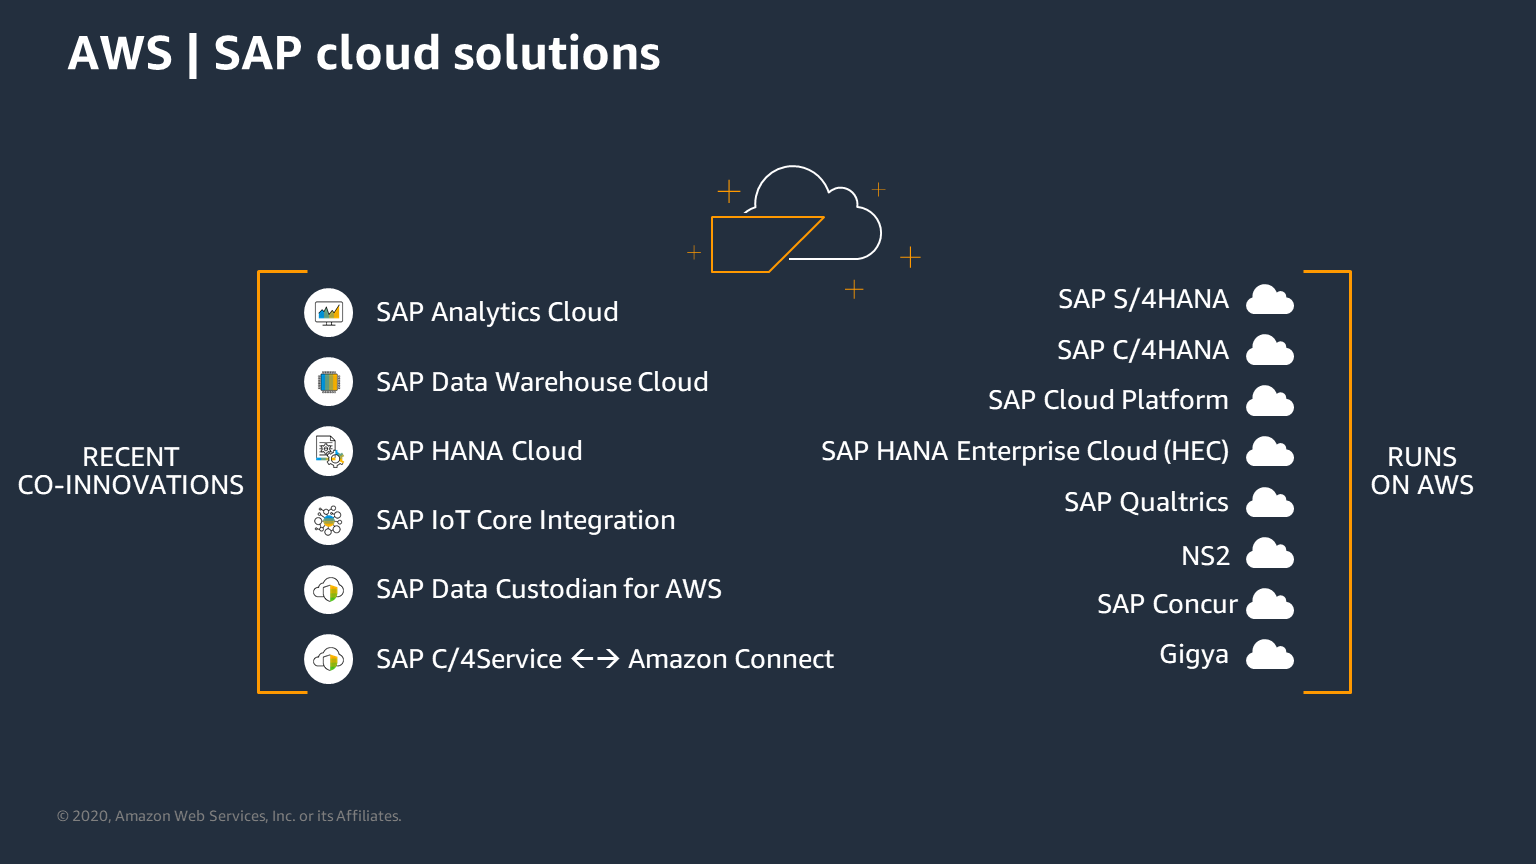 This image shows SAP solutions that run on AWS